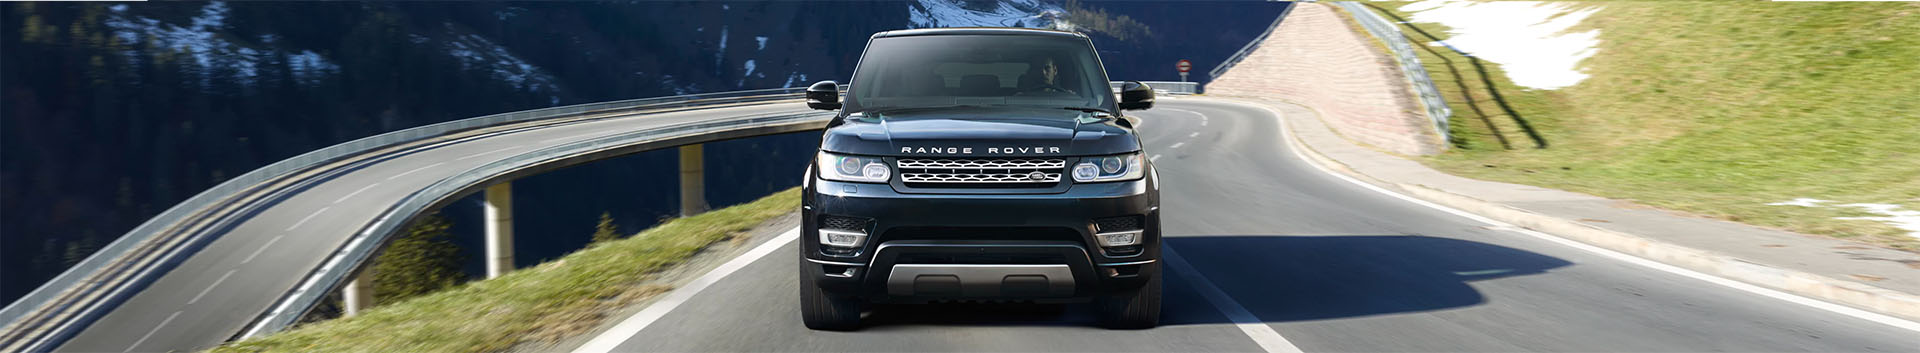 2017 Land Rover Discovery Sport Driving on Road